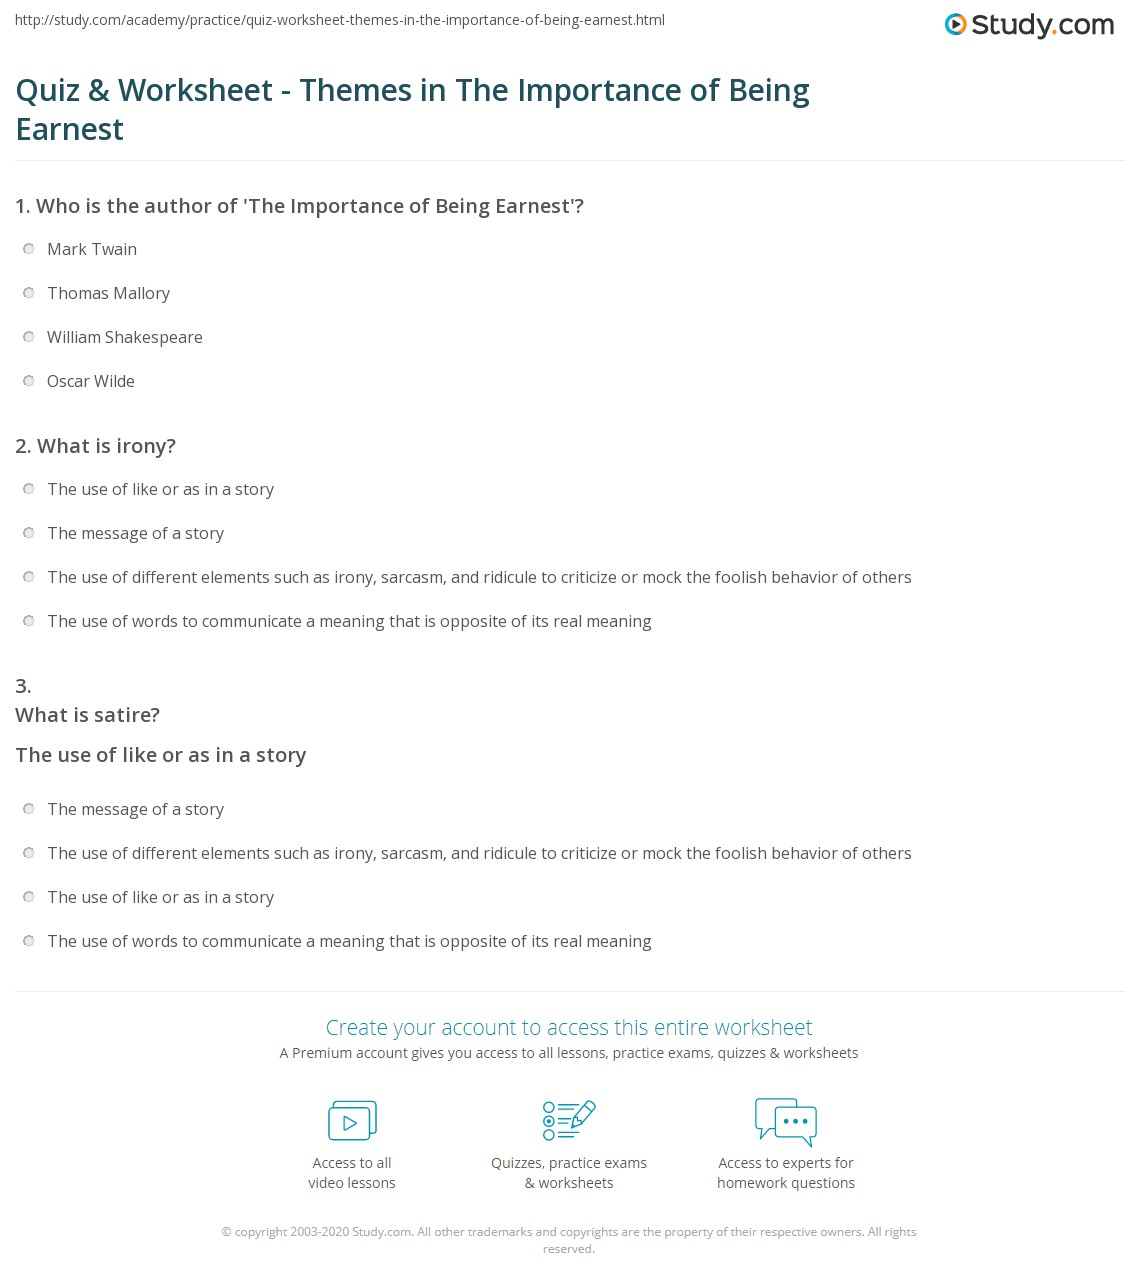 quiz worksheet themes in the importance of being earnest print the importance of being earnest irony satire themes worksheet